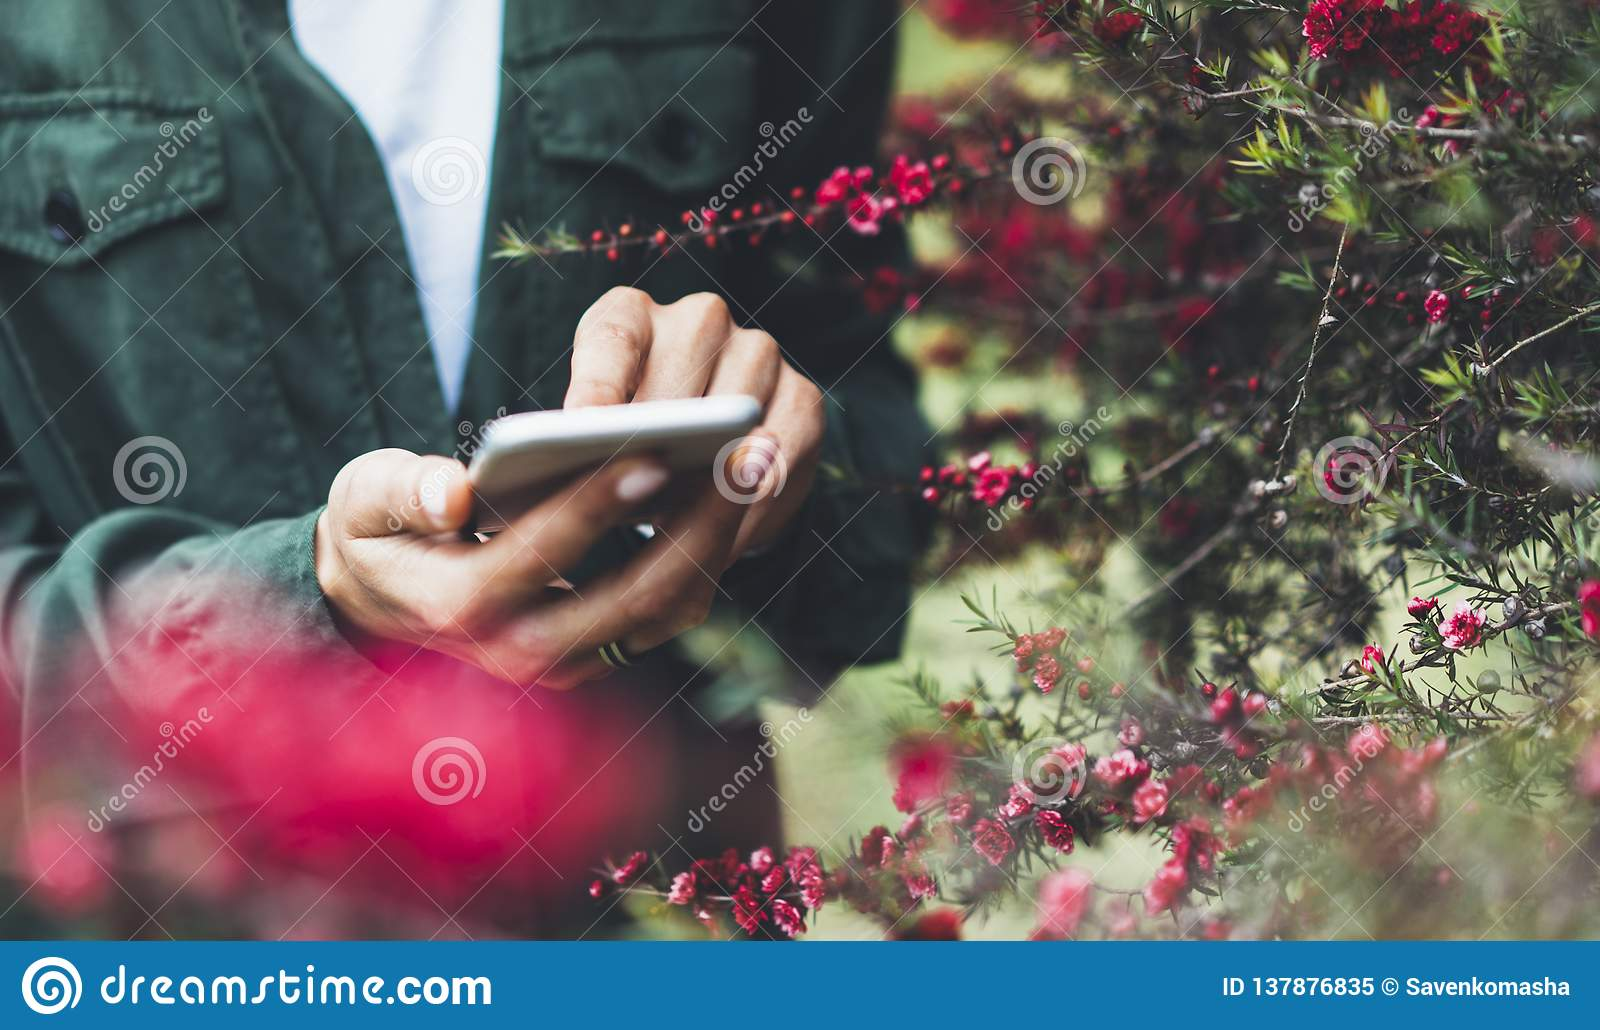 Hipster texting message on smartphone or technology, mock up of blank screen. Girl using cellphone on red flowers background close